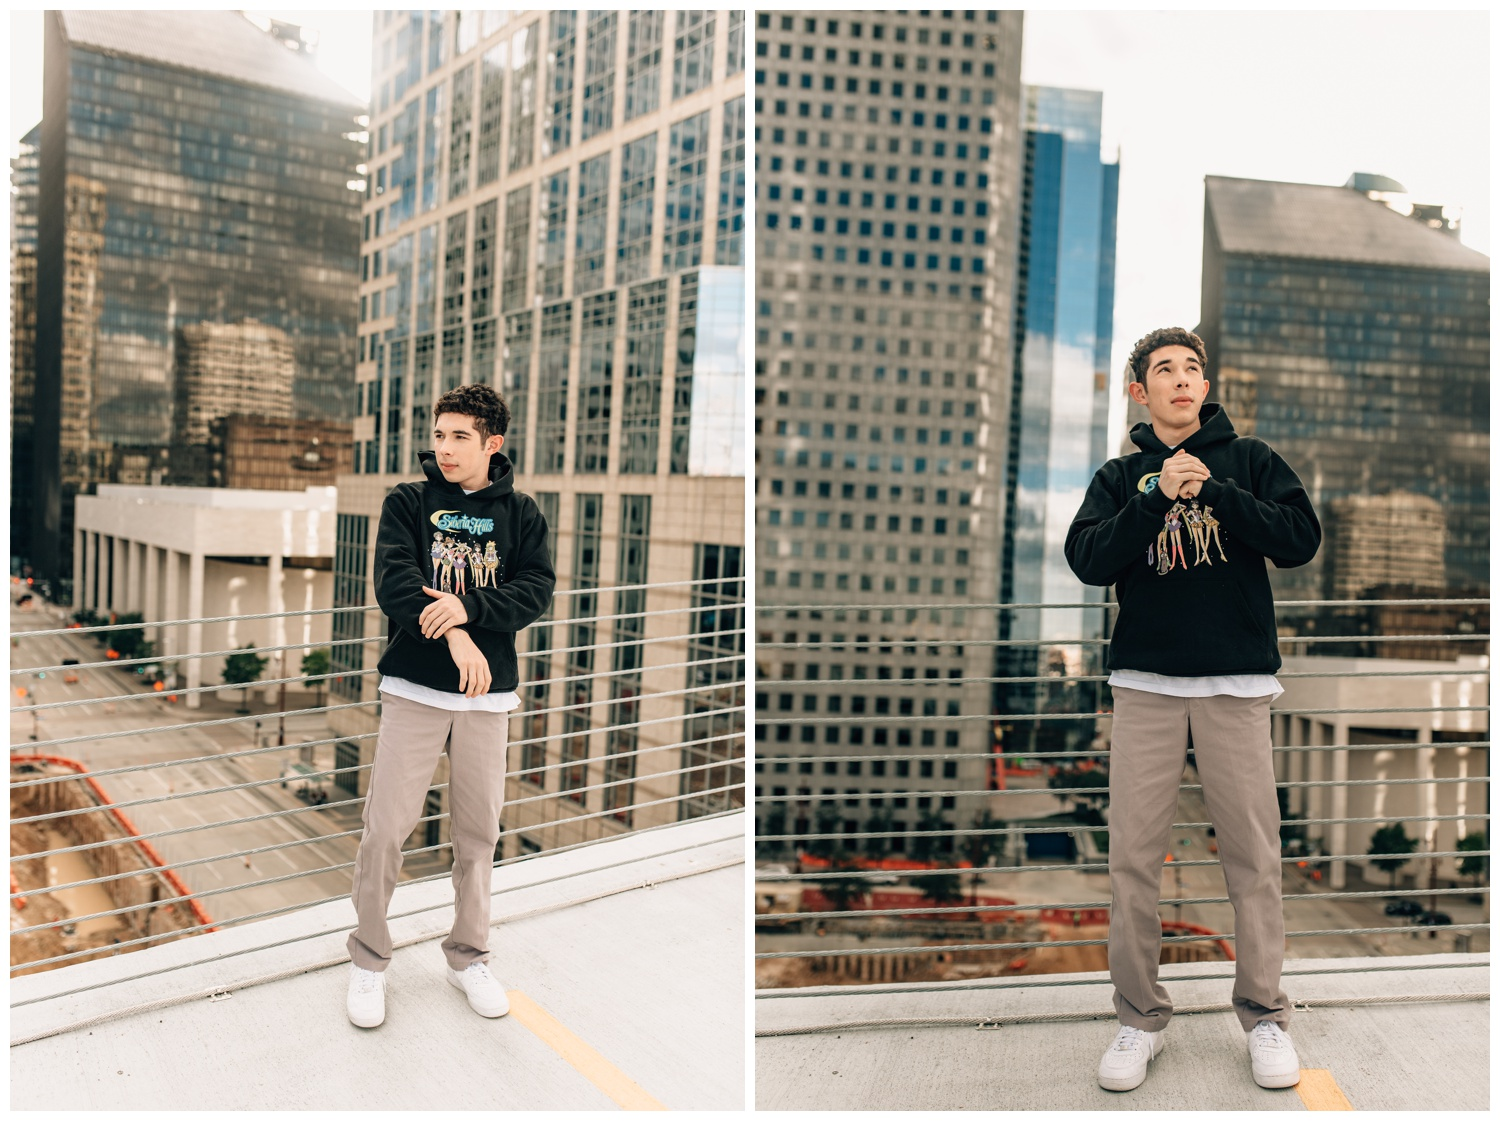 guy standing at top of a parking garage wearing urban outfit